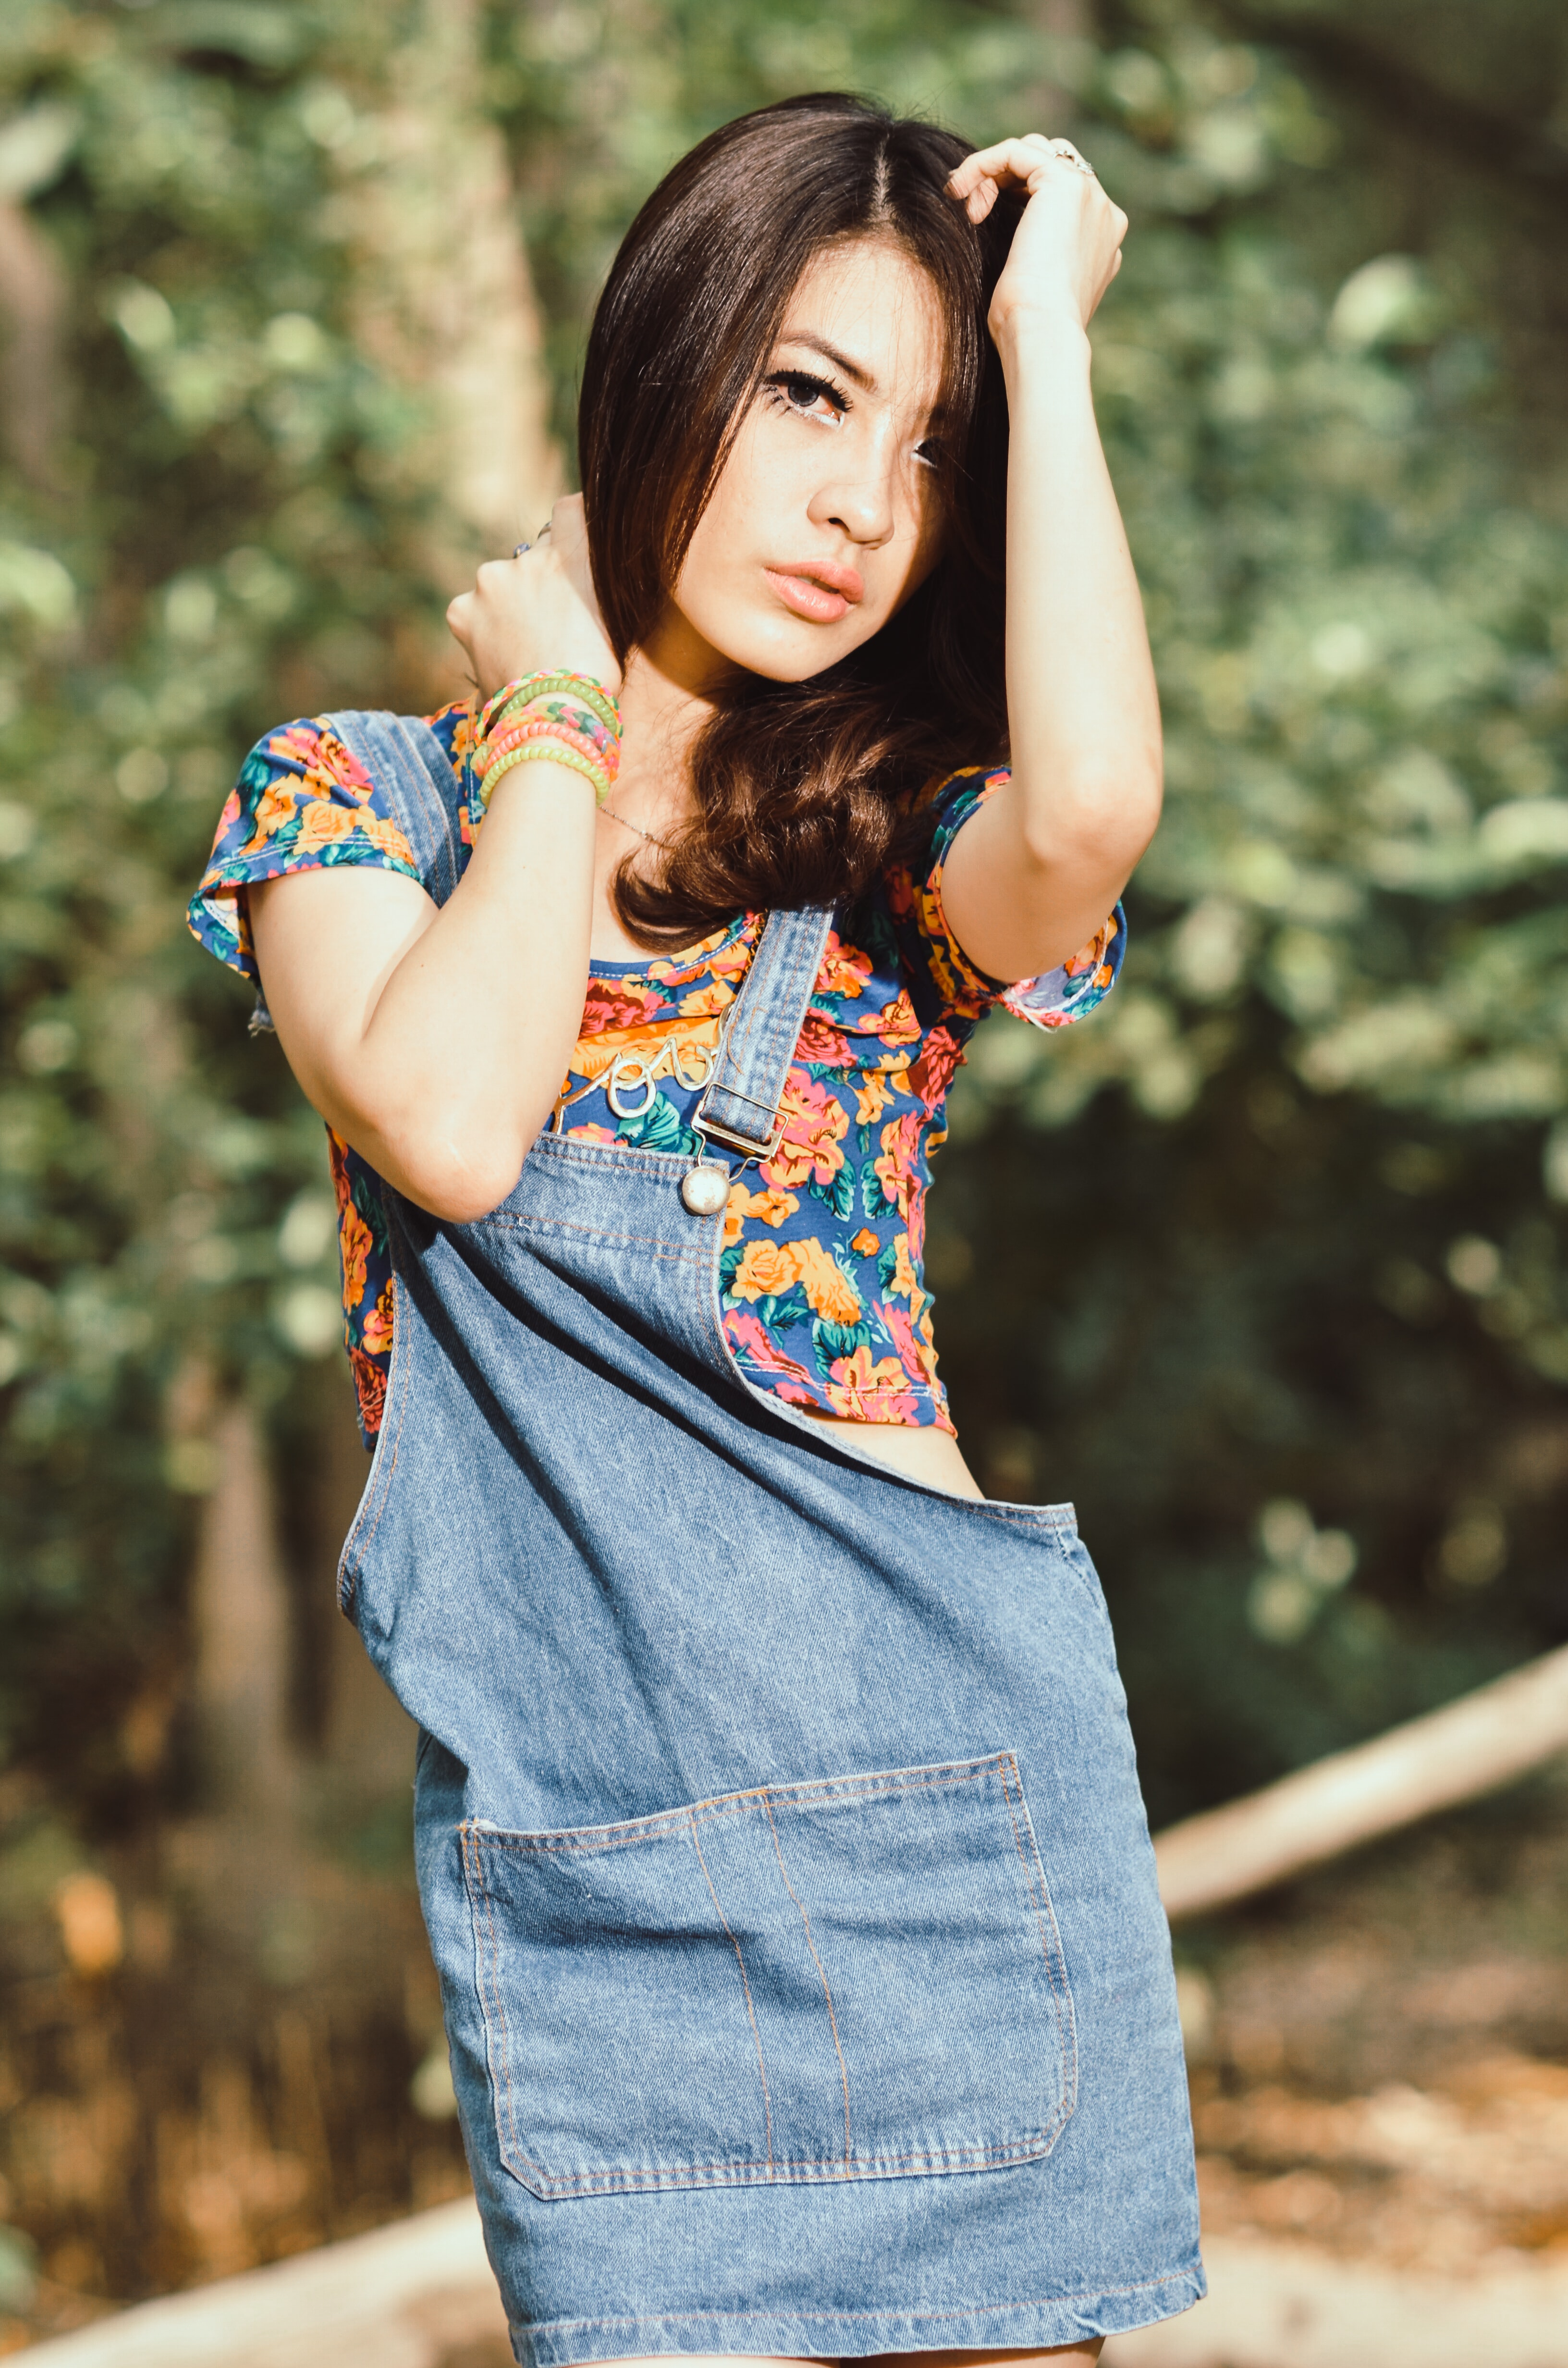 shallow focus photography of woman wearing blue, yellow, and red floral top posing near trees